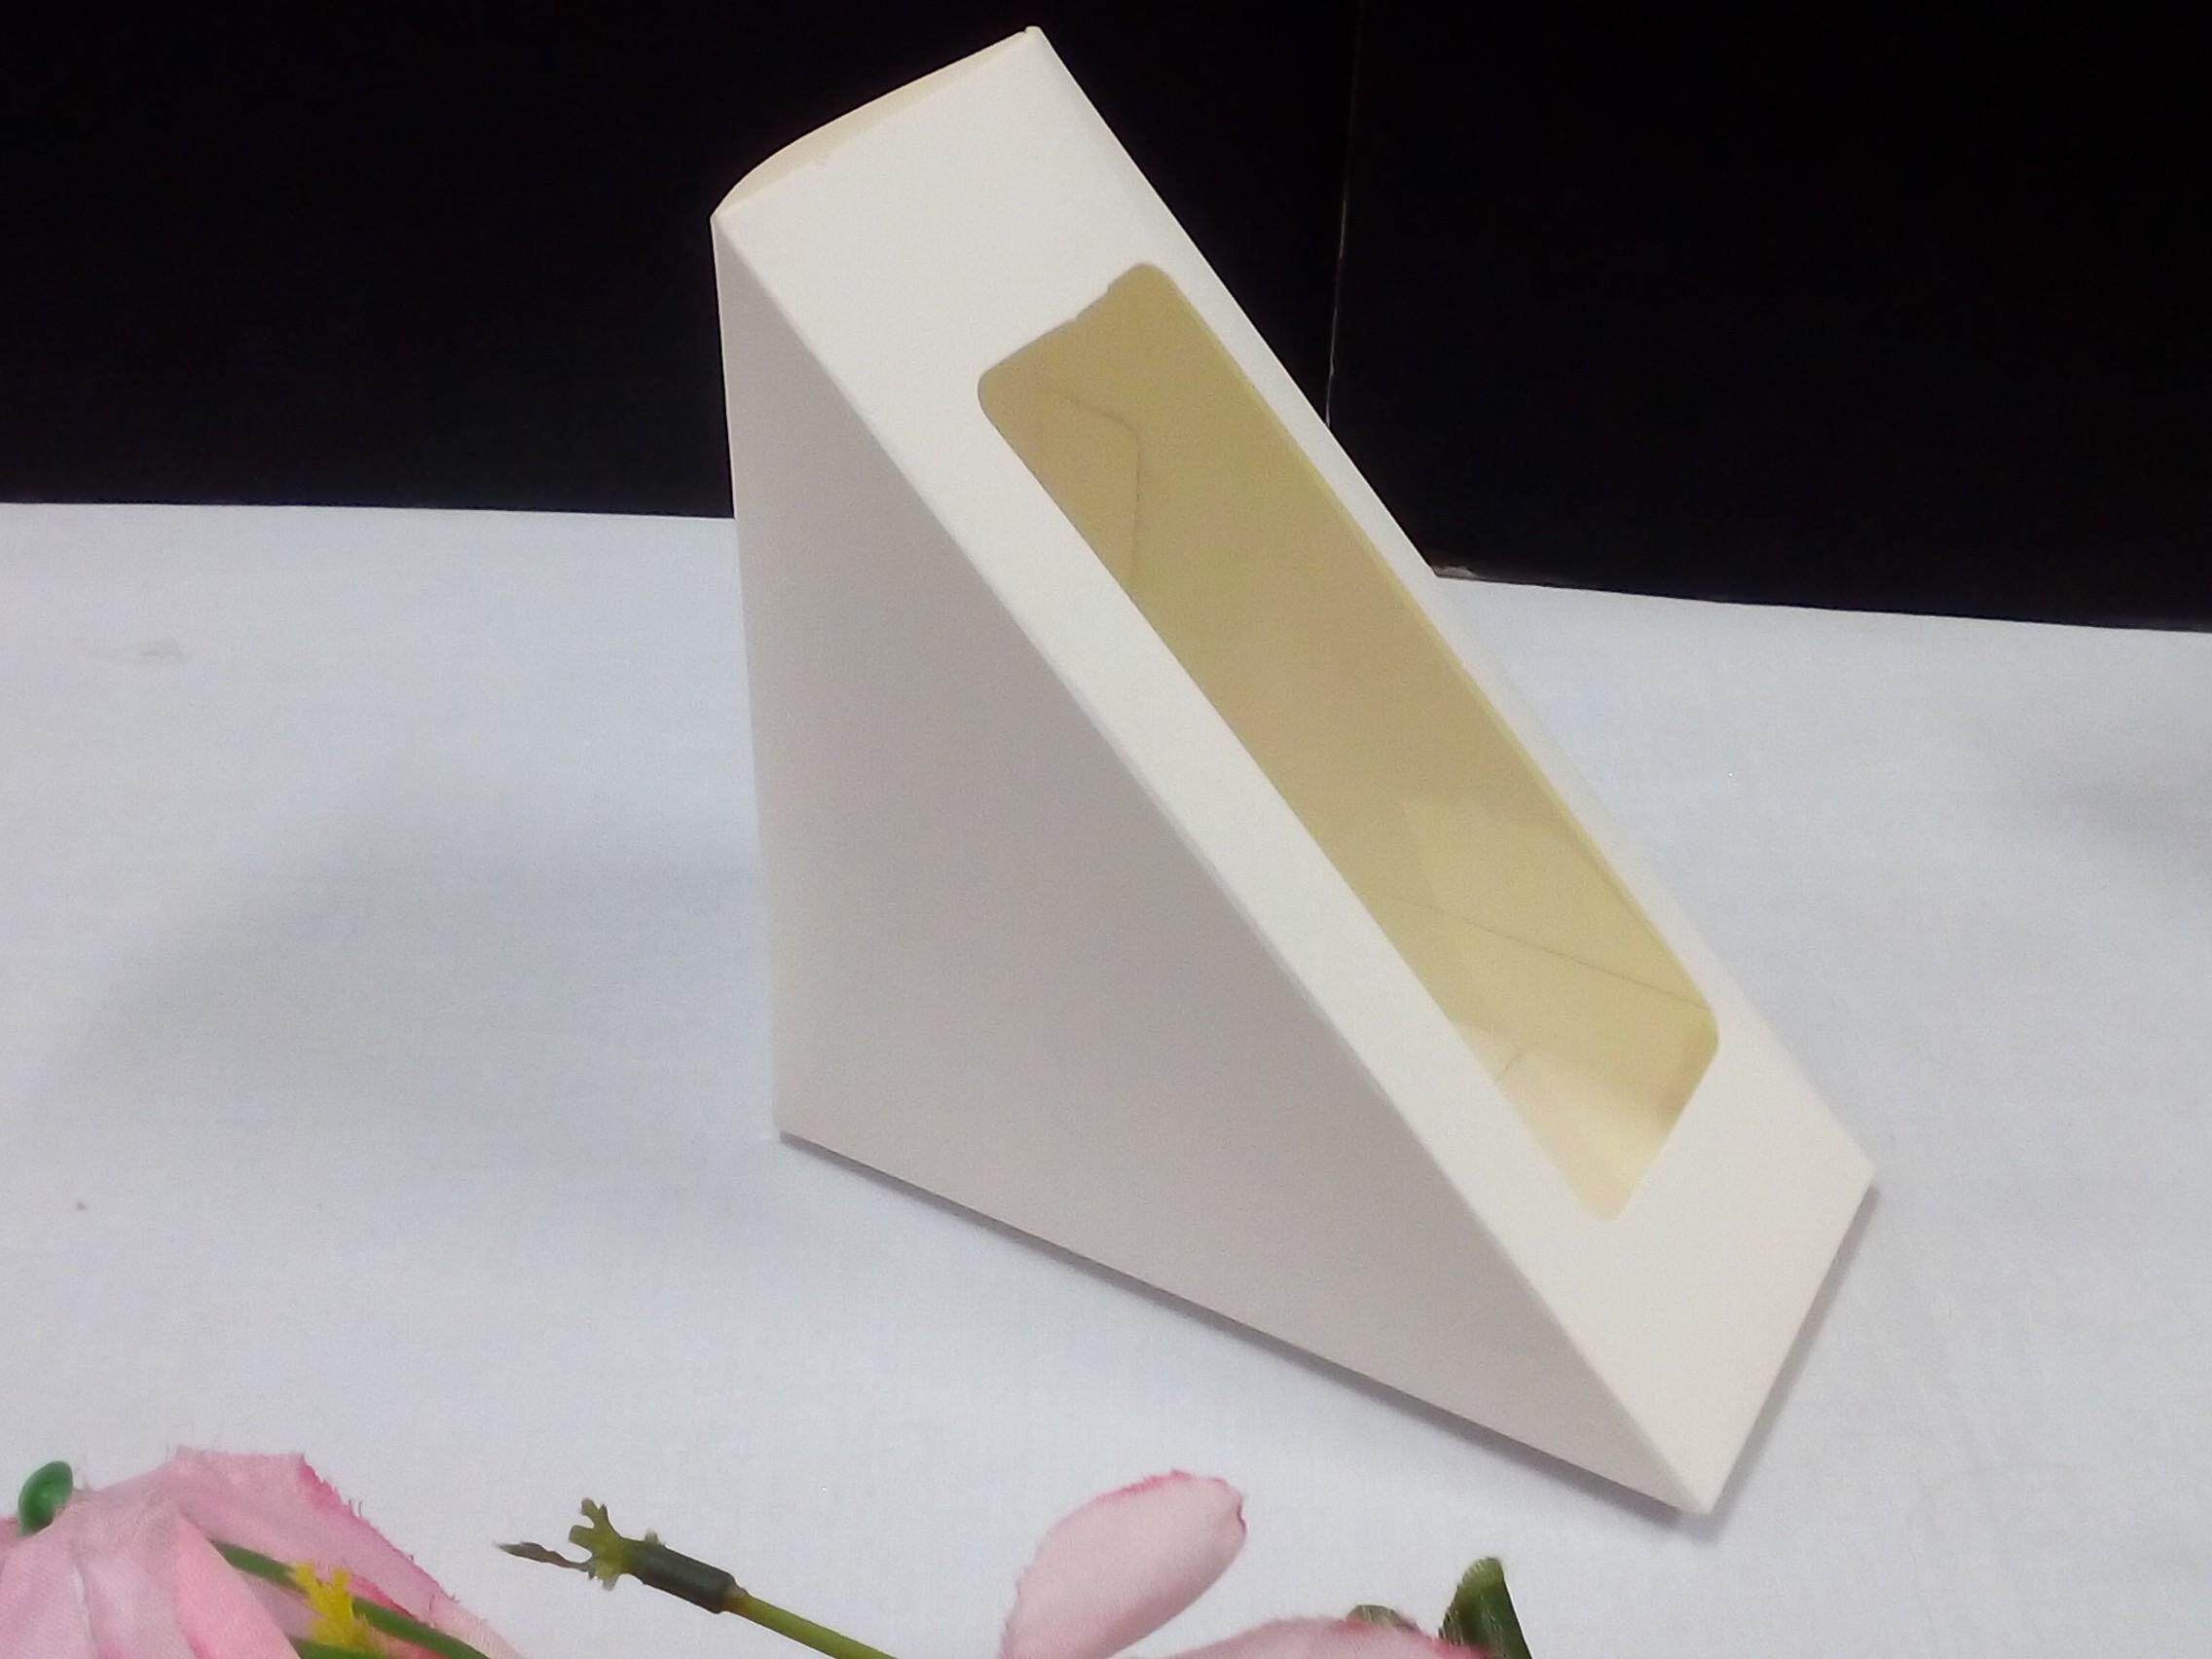 50 pieces Sandwich Paper Box For Two Pieces Breads. Ship within 6 Hours ! (Plain White)